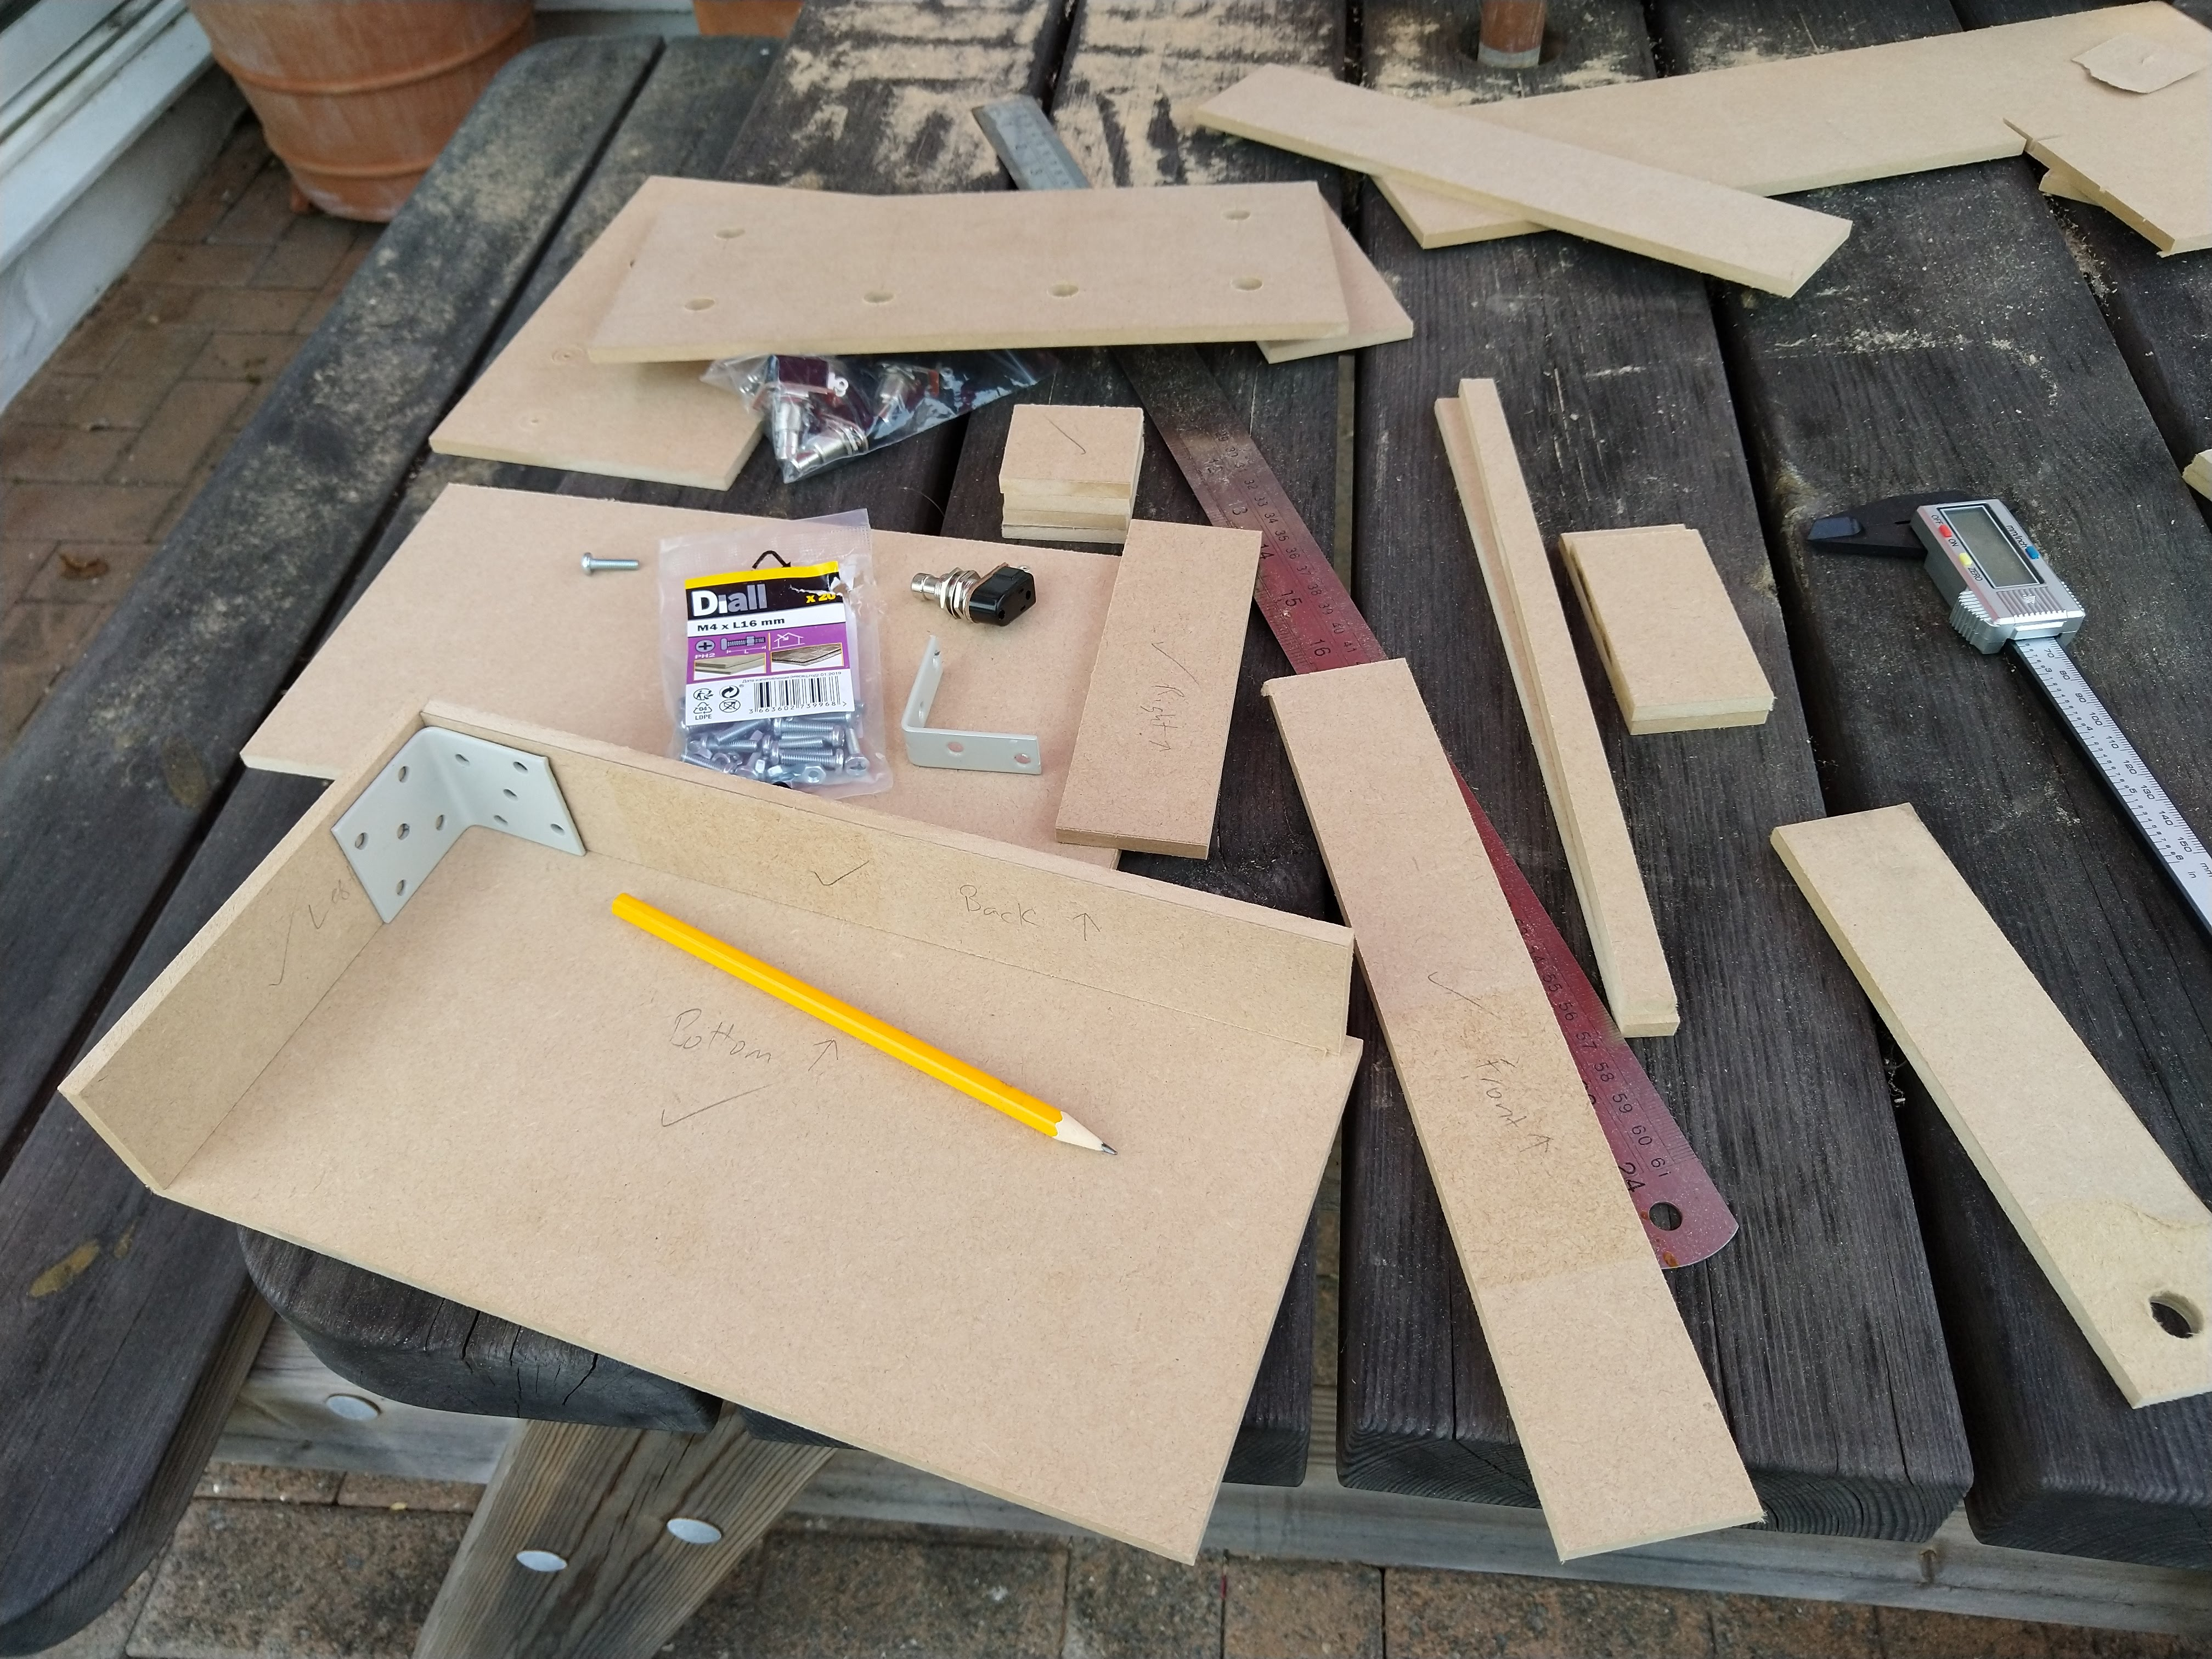 A table covered in MDF cut into various sizes. In the foreground there are pieces placed together into the start of a box shape, leaning against a corner bracket